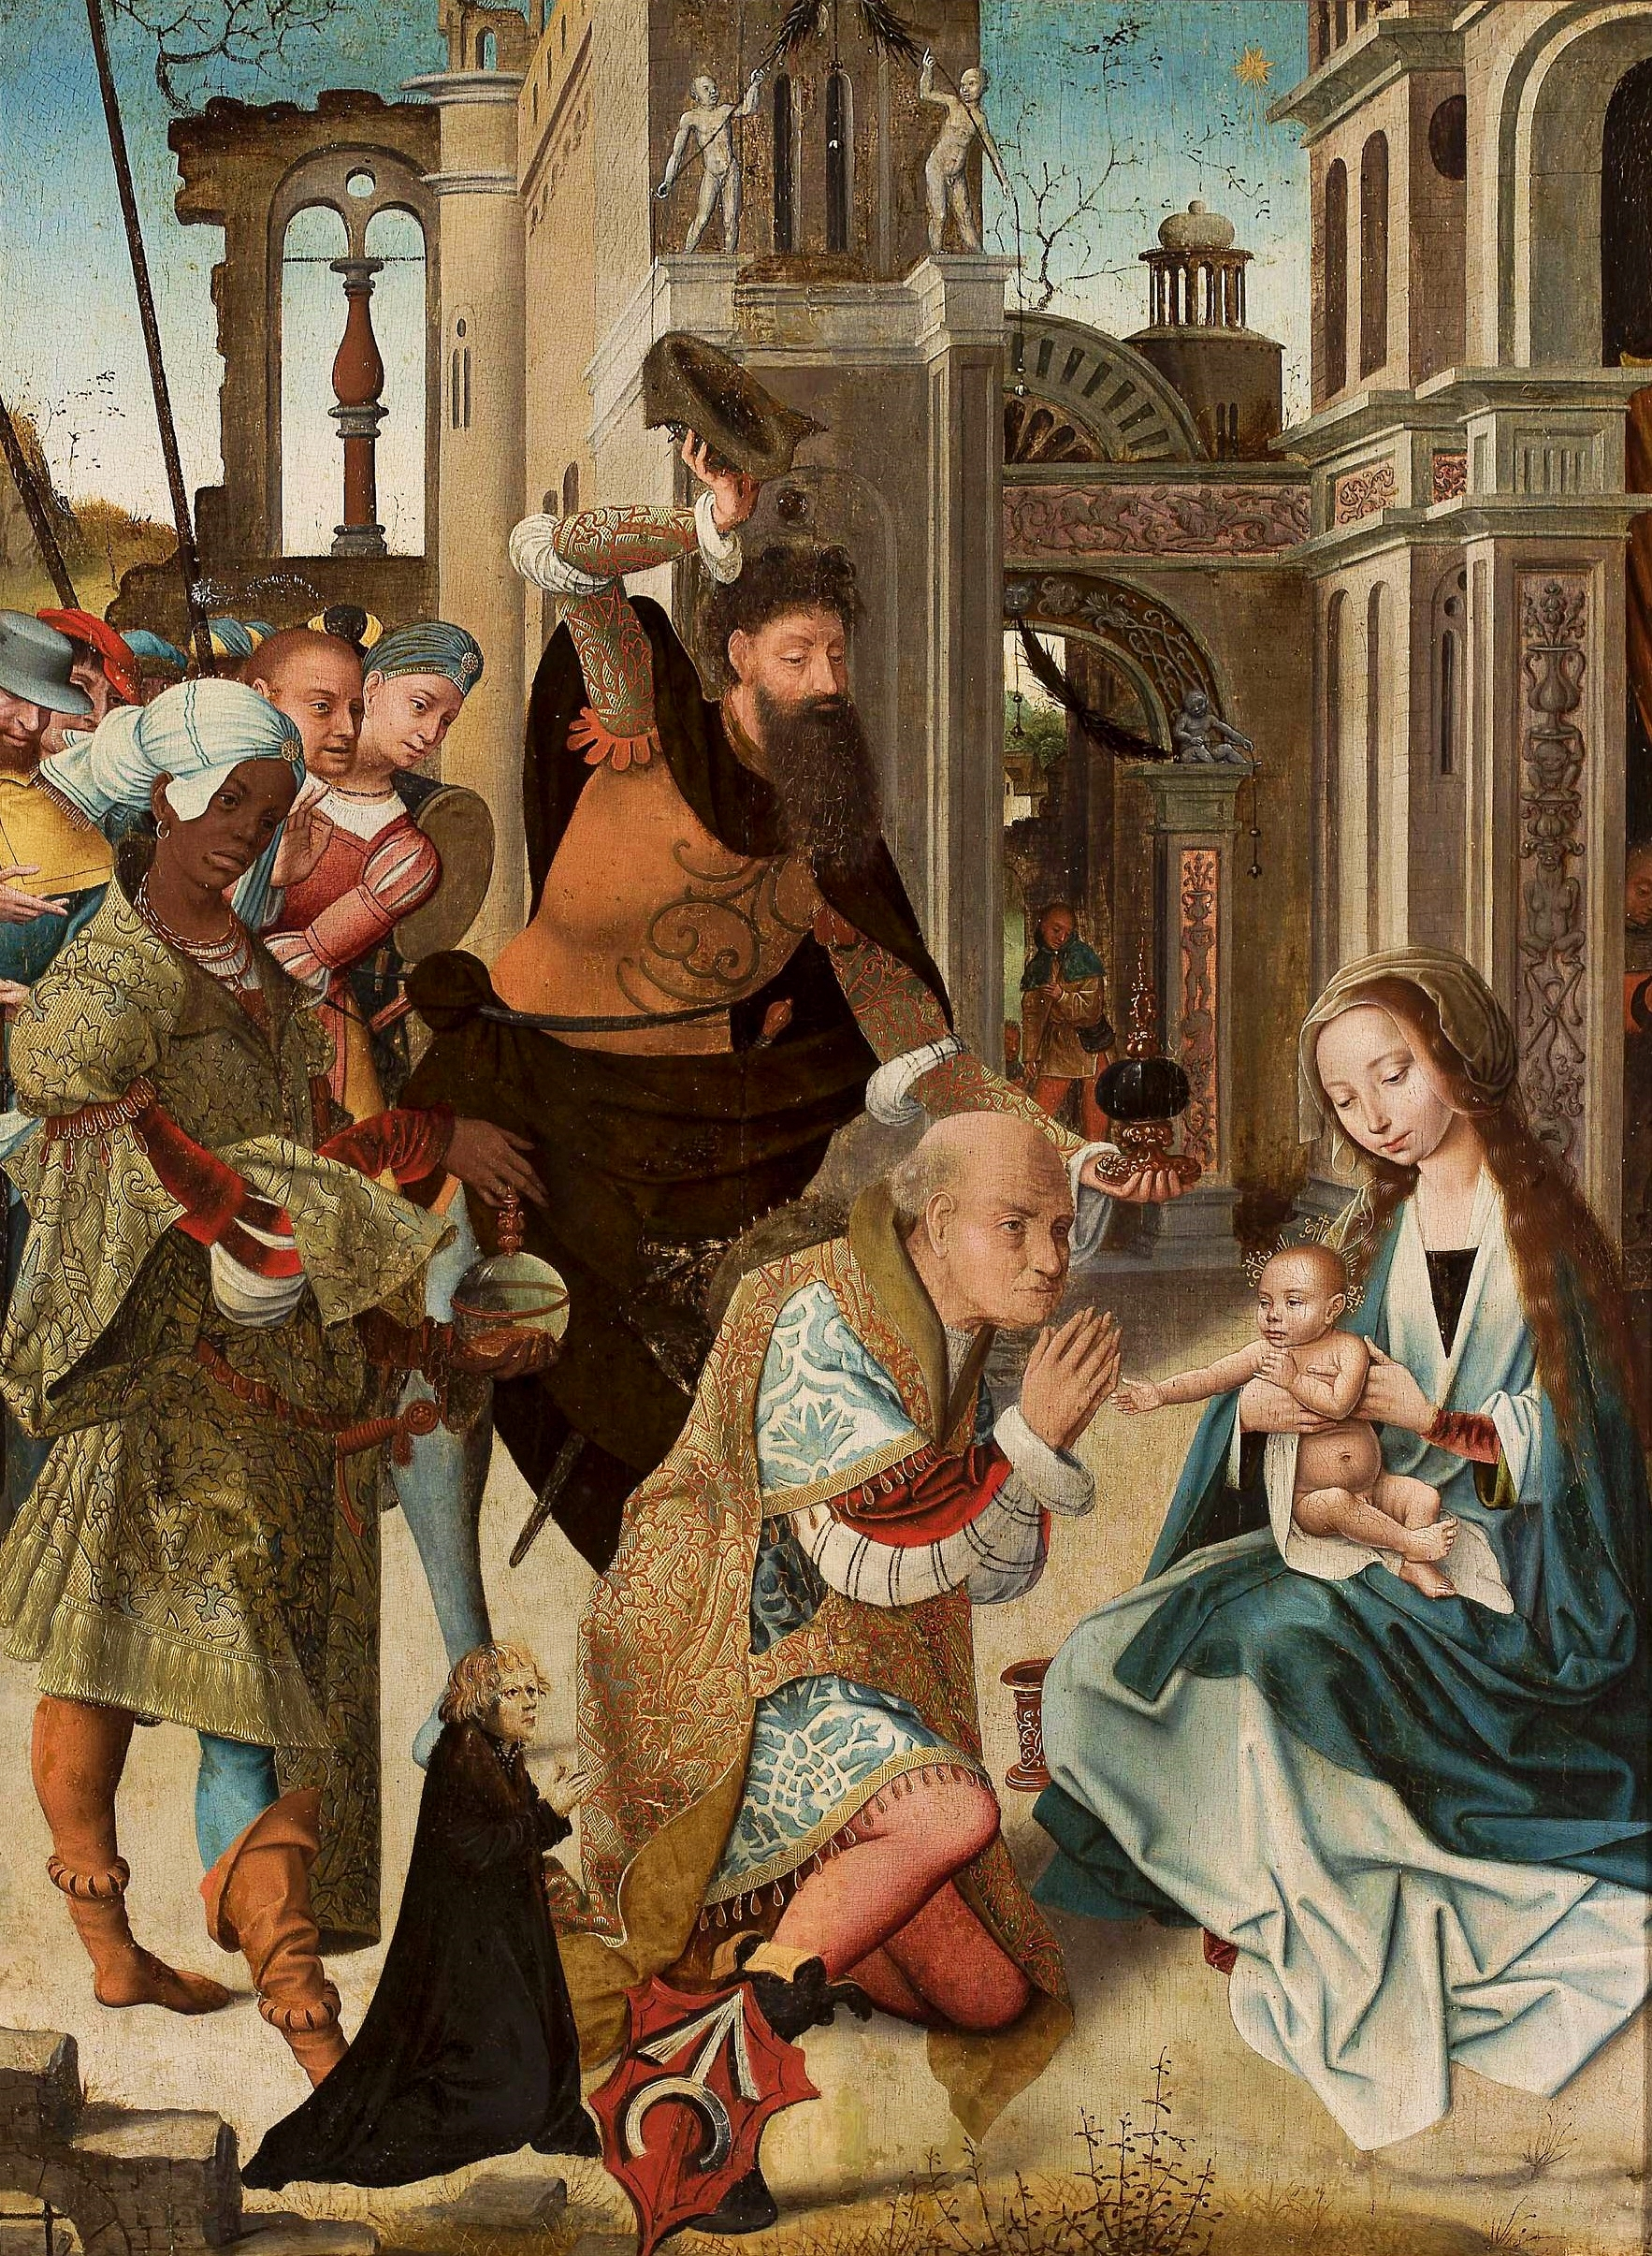 File:Master of 1518 Adoration of the Magi.jpg